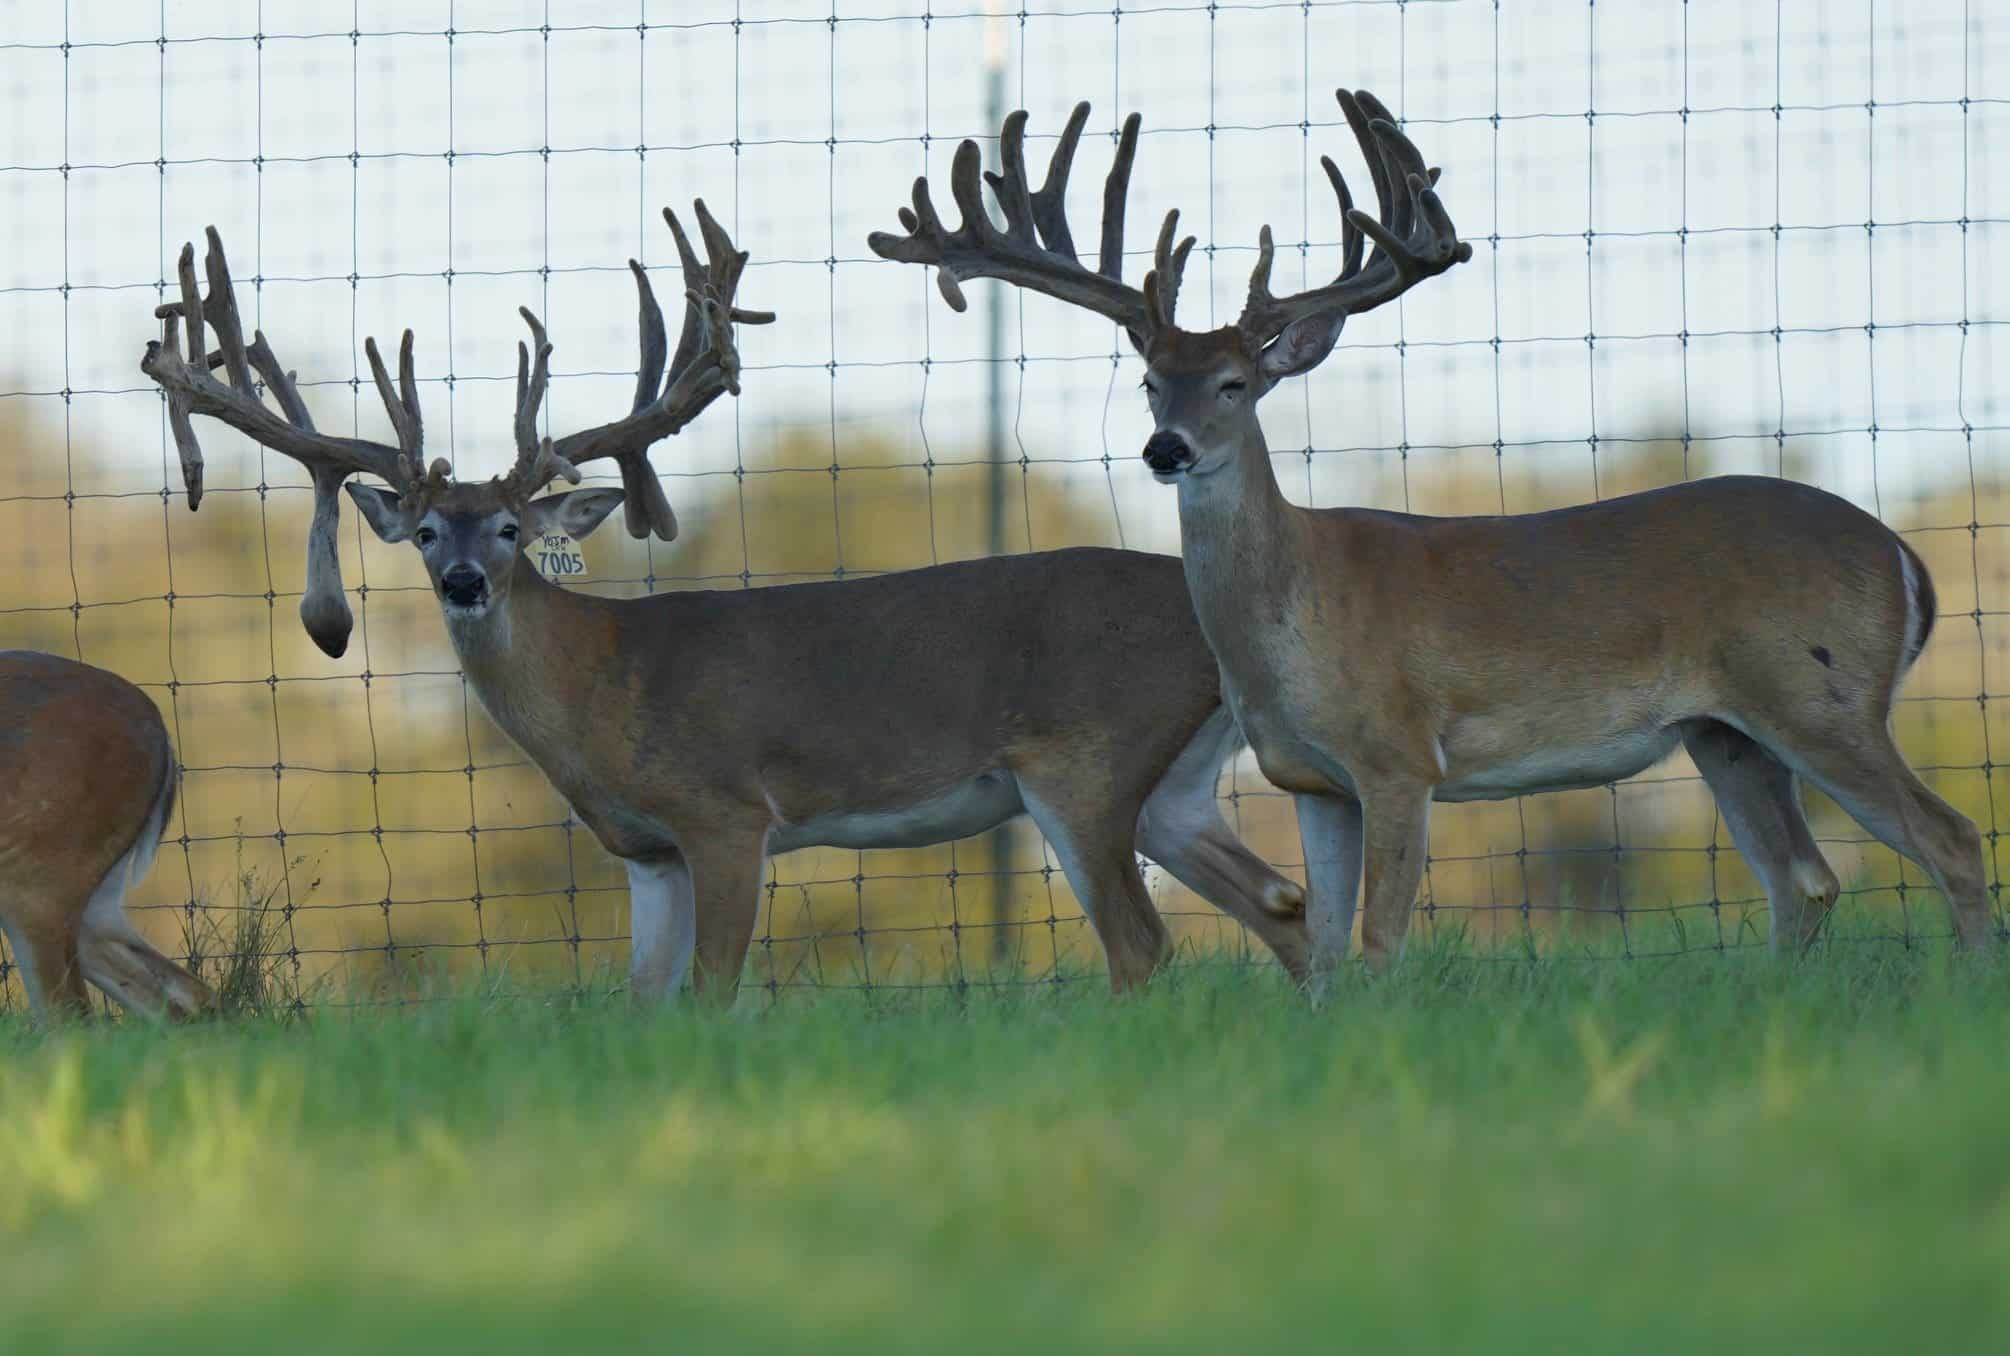 These M3 Whitetails bucks have grown out nicely at our Texas whitetail deer farm. M3 Whitetails are Texas deer breeders that specialize in raising and selling whitetail Breeder Bucks, whitetail DMP Bucks, whitetail Stocker Bucks, as well as open and bred whitetail does. Big Texas Typicals are what buyers want when buying Texas DMP Bucks, Stocker Bucks, and Breeder Bucks. Our whitetail deer for sale are sure to impress prospective buyers and are priced competitively.